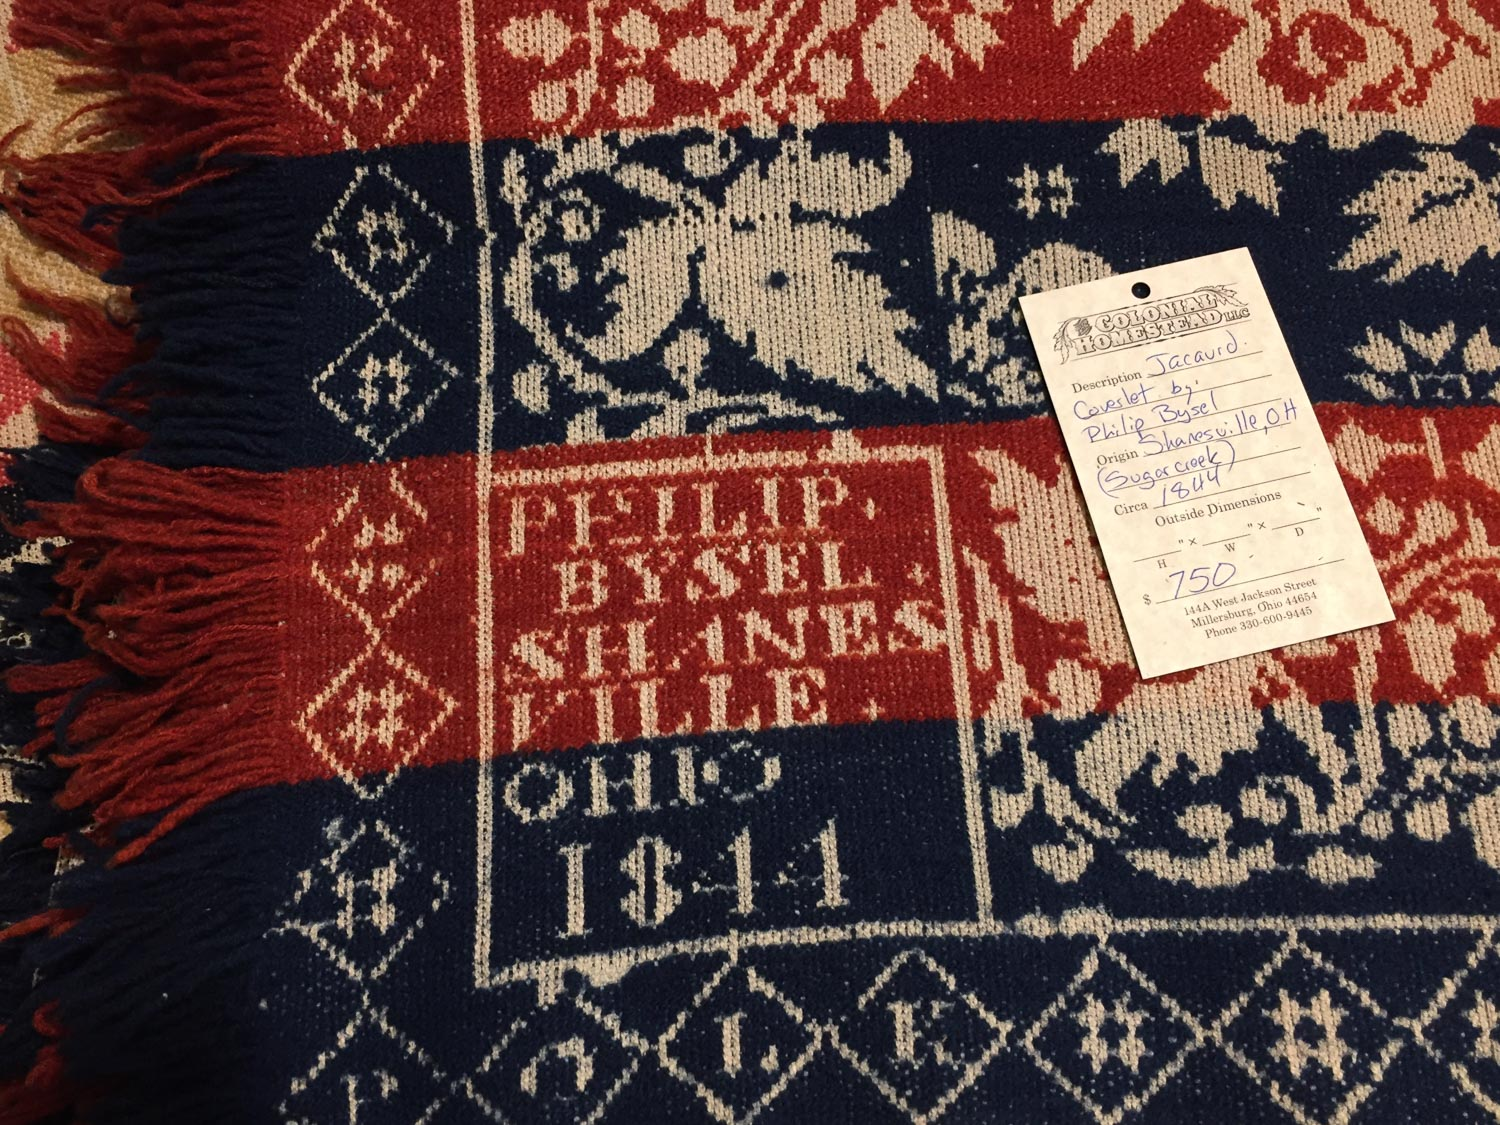 Coverlet 1844 at Colonial Homestead in Ohio.